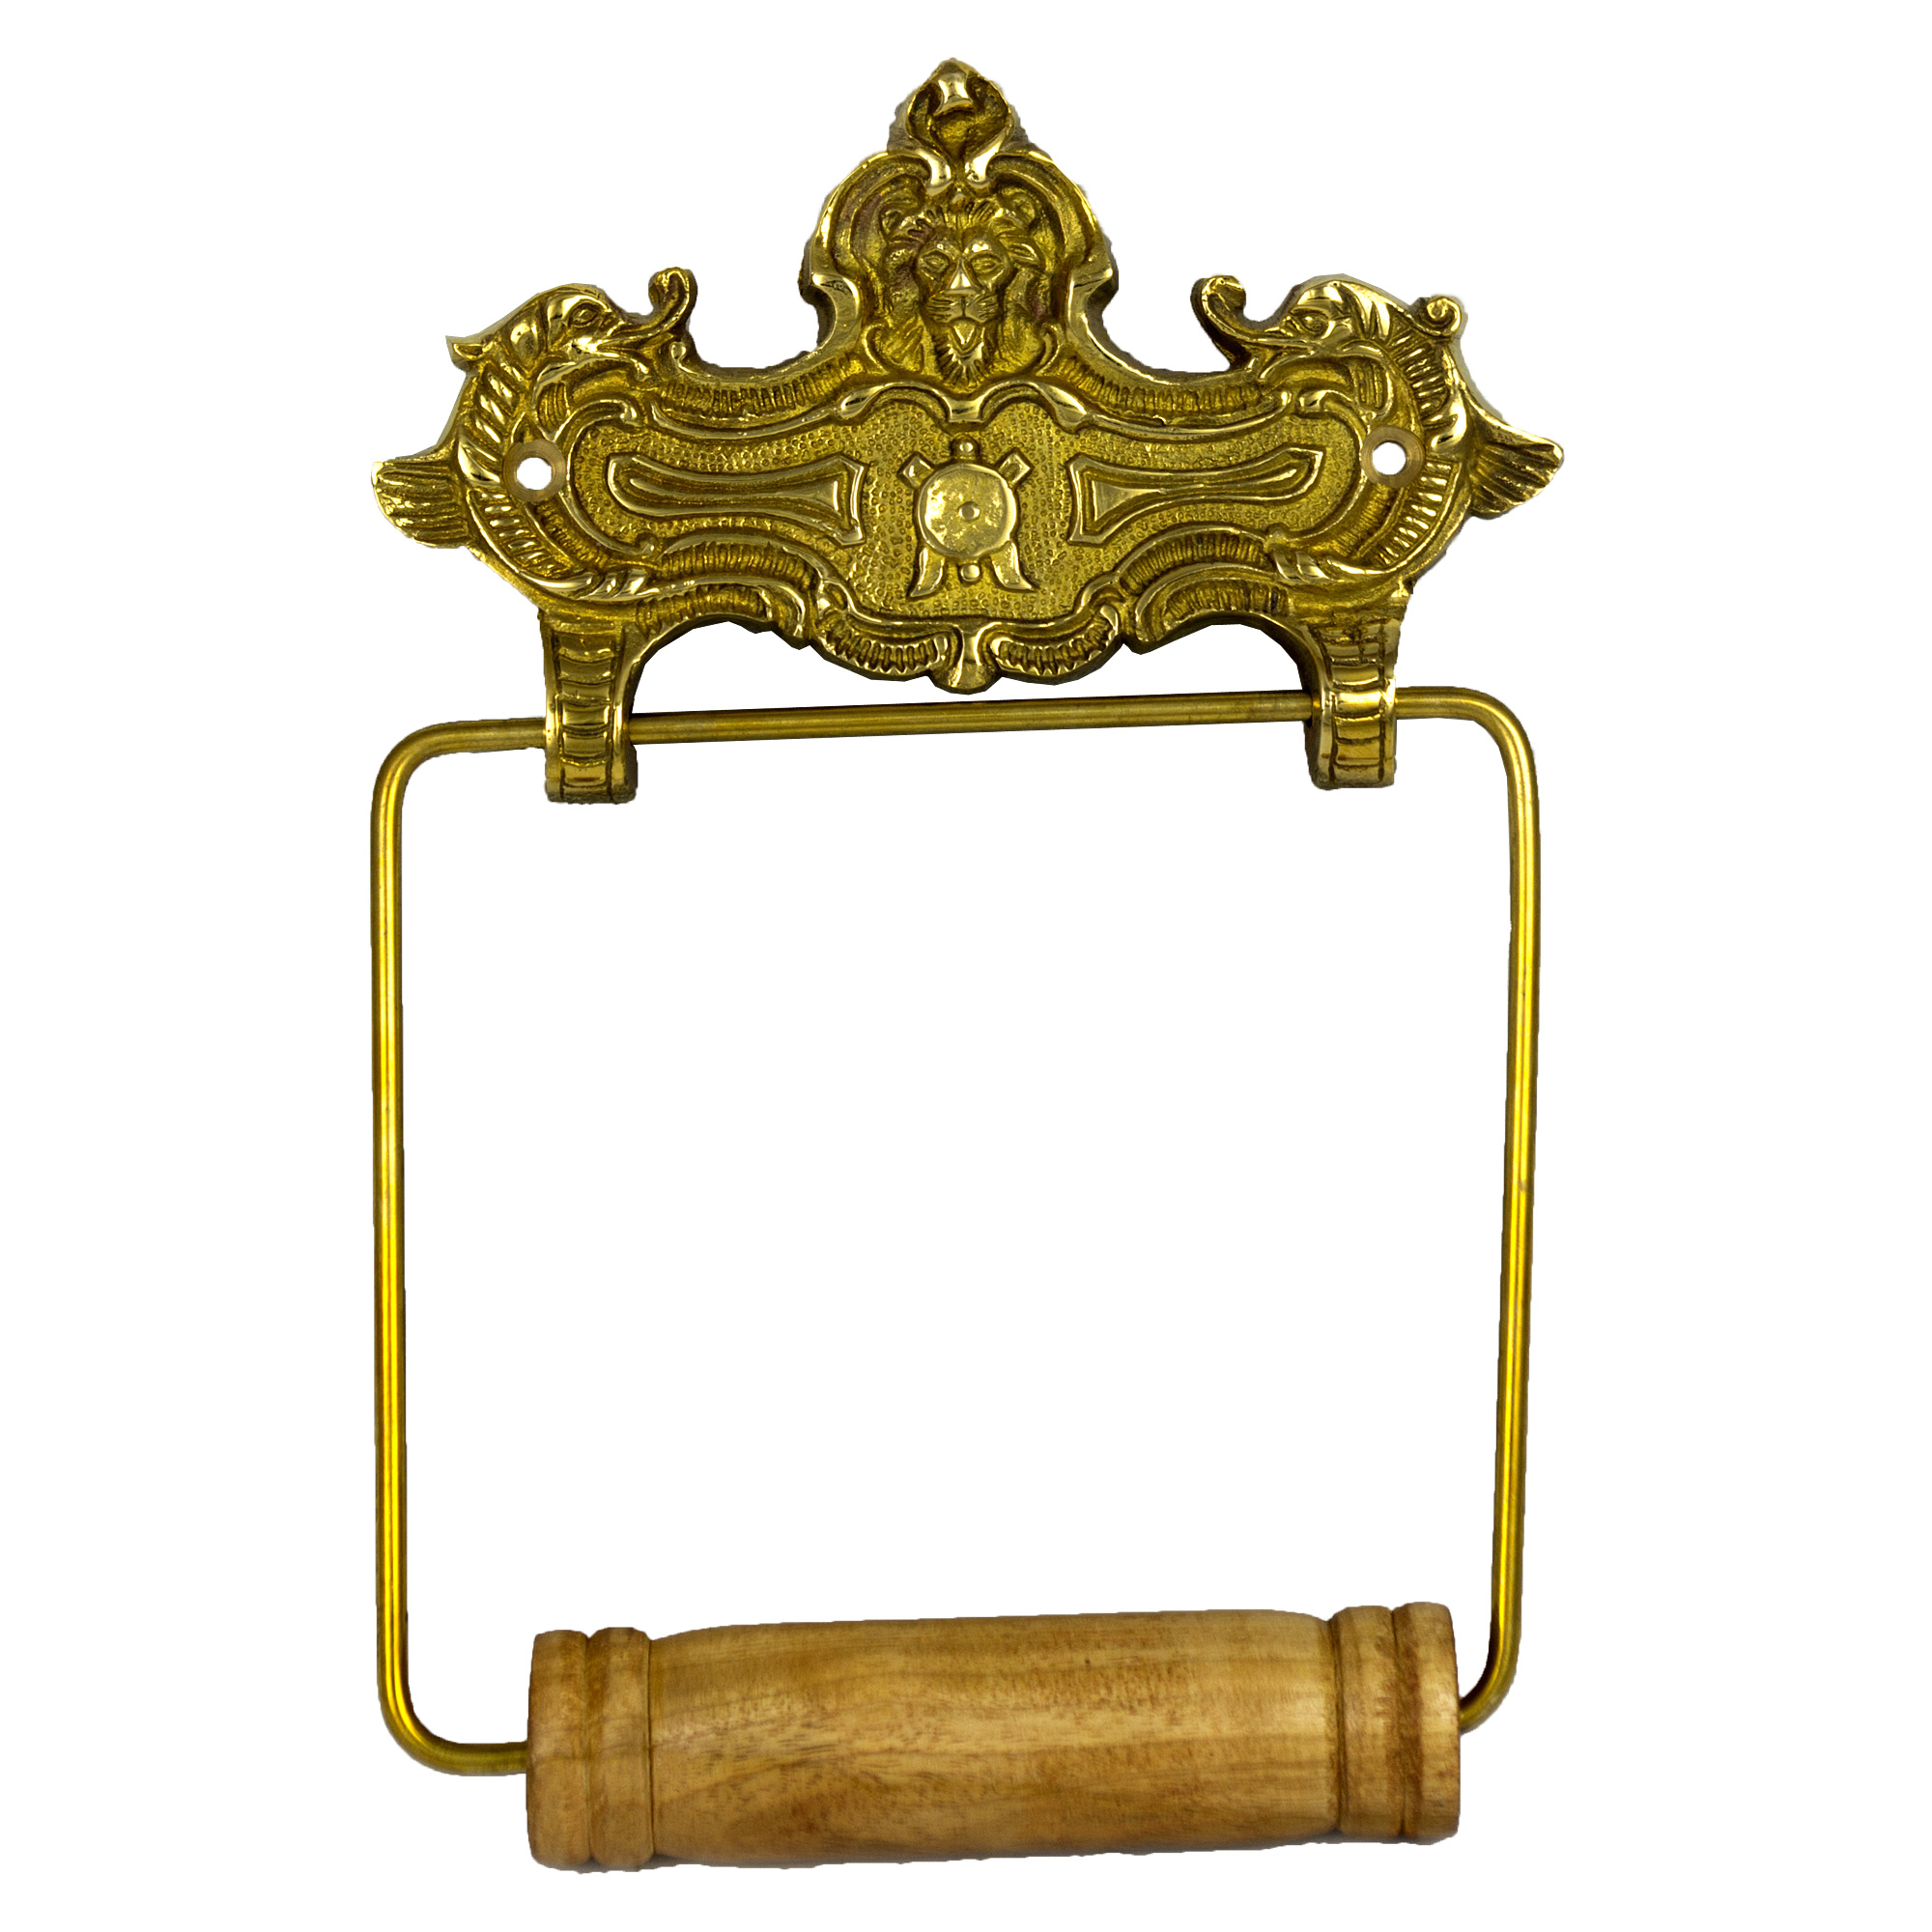 Wall Mount VINTAGE STYLE Toilet Paper Holder in Solid Brass French Decor